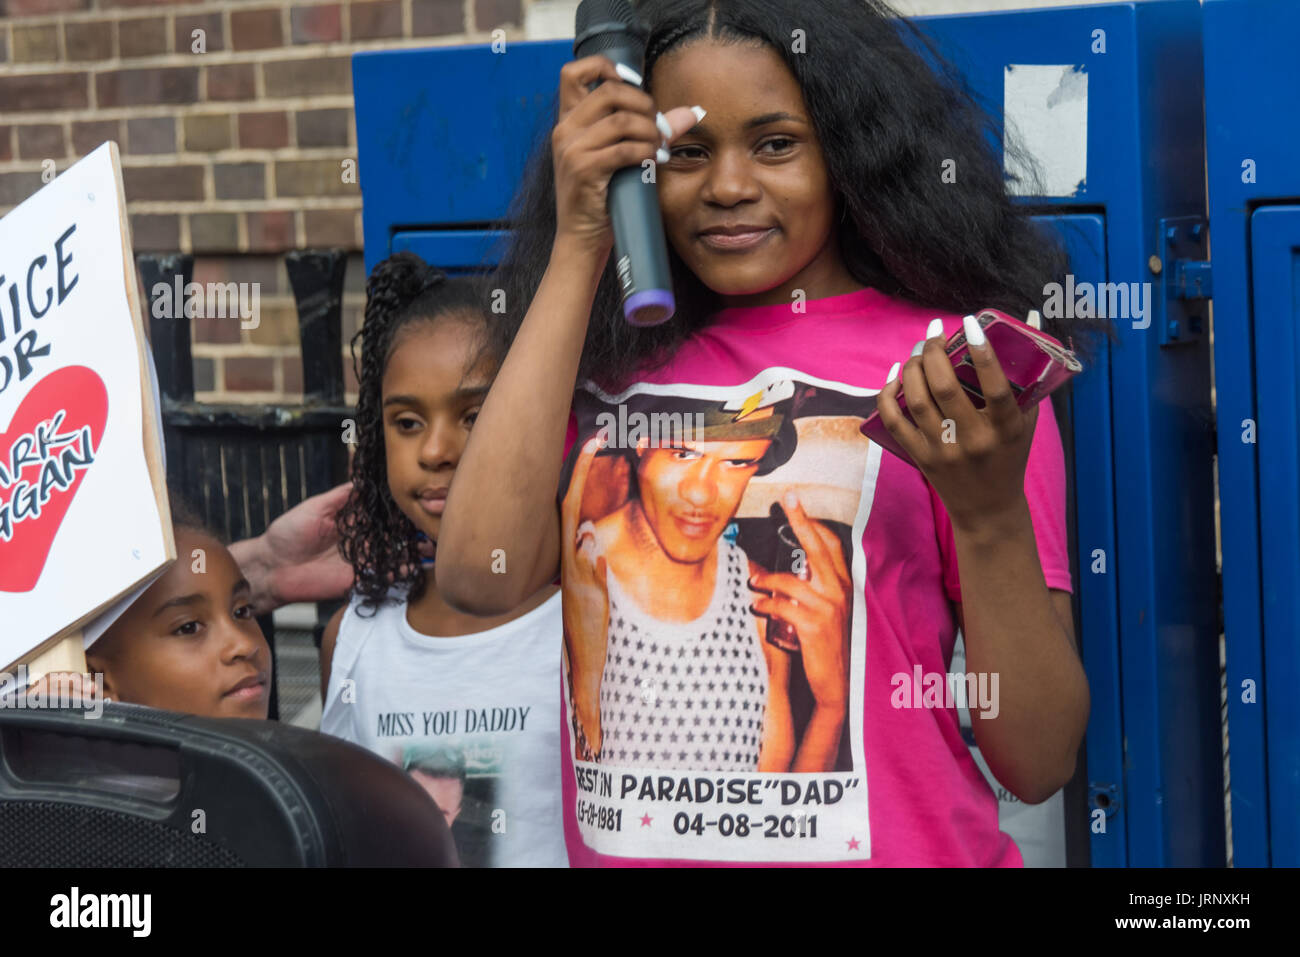 London, UK. 4th Aug, 2017. London, UK. 4th August 2017. Mark Duggan's daughter speaks at the rally at Tottenham Police Station remembering her father on the sixth anniversary of his killing by police, and also the police killing of other members of the Tottenham community - Cynthia Jarrett, Joy Gardner, Roger Sylvester, Mark Duggan and Jermaine Baker and the recent murders of Rashan Charles, Darren Cumberbatch and Edson Da Costa. Led by Stafford Scott, there was poetry, a minute of silence and speeches from family members as well as local activists, Becky Shah from the Hillsborough campaign - Stock Image